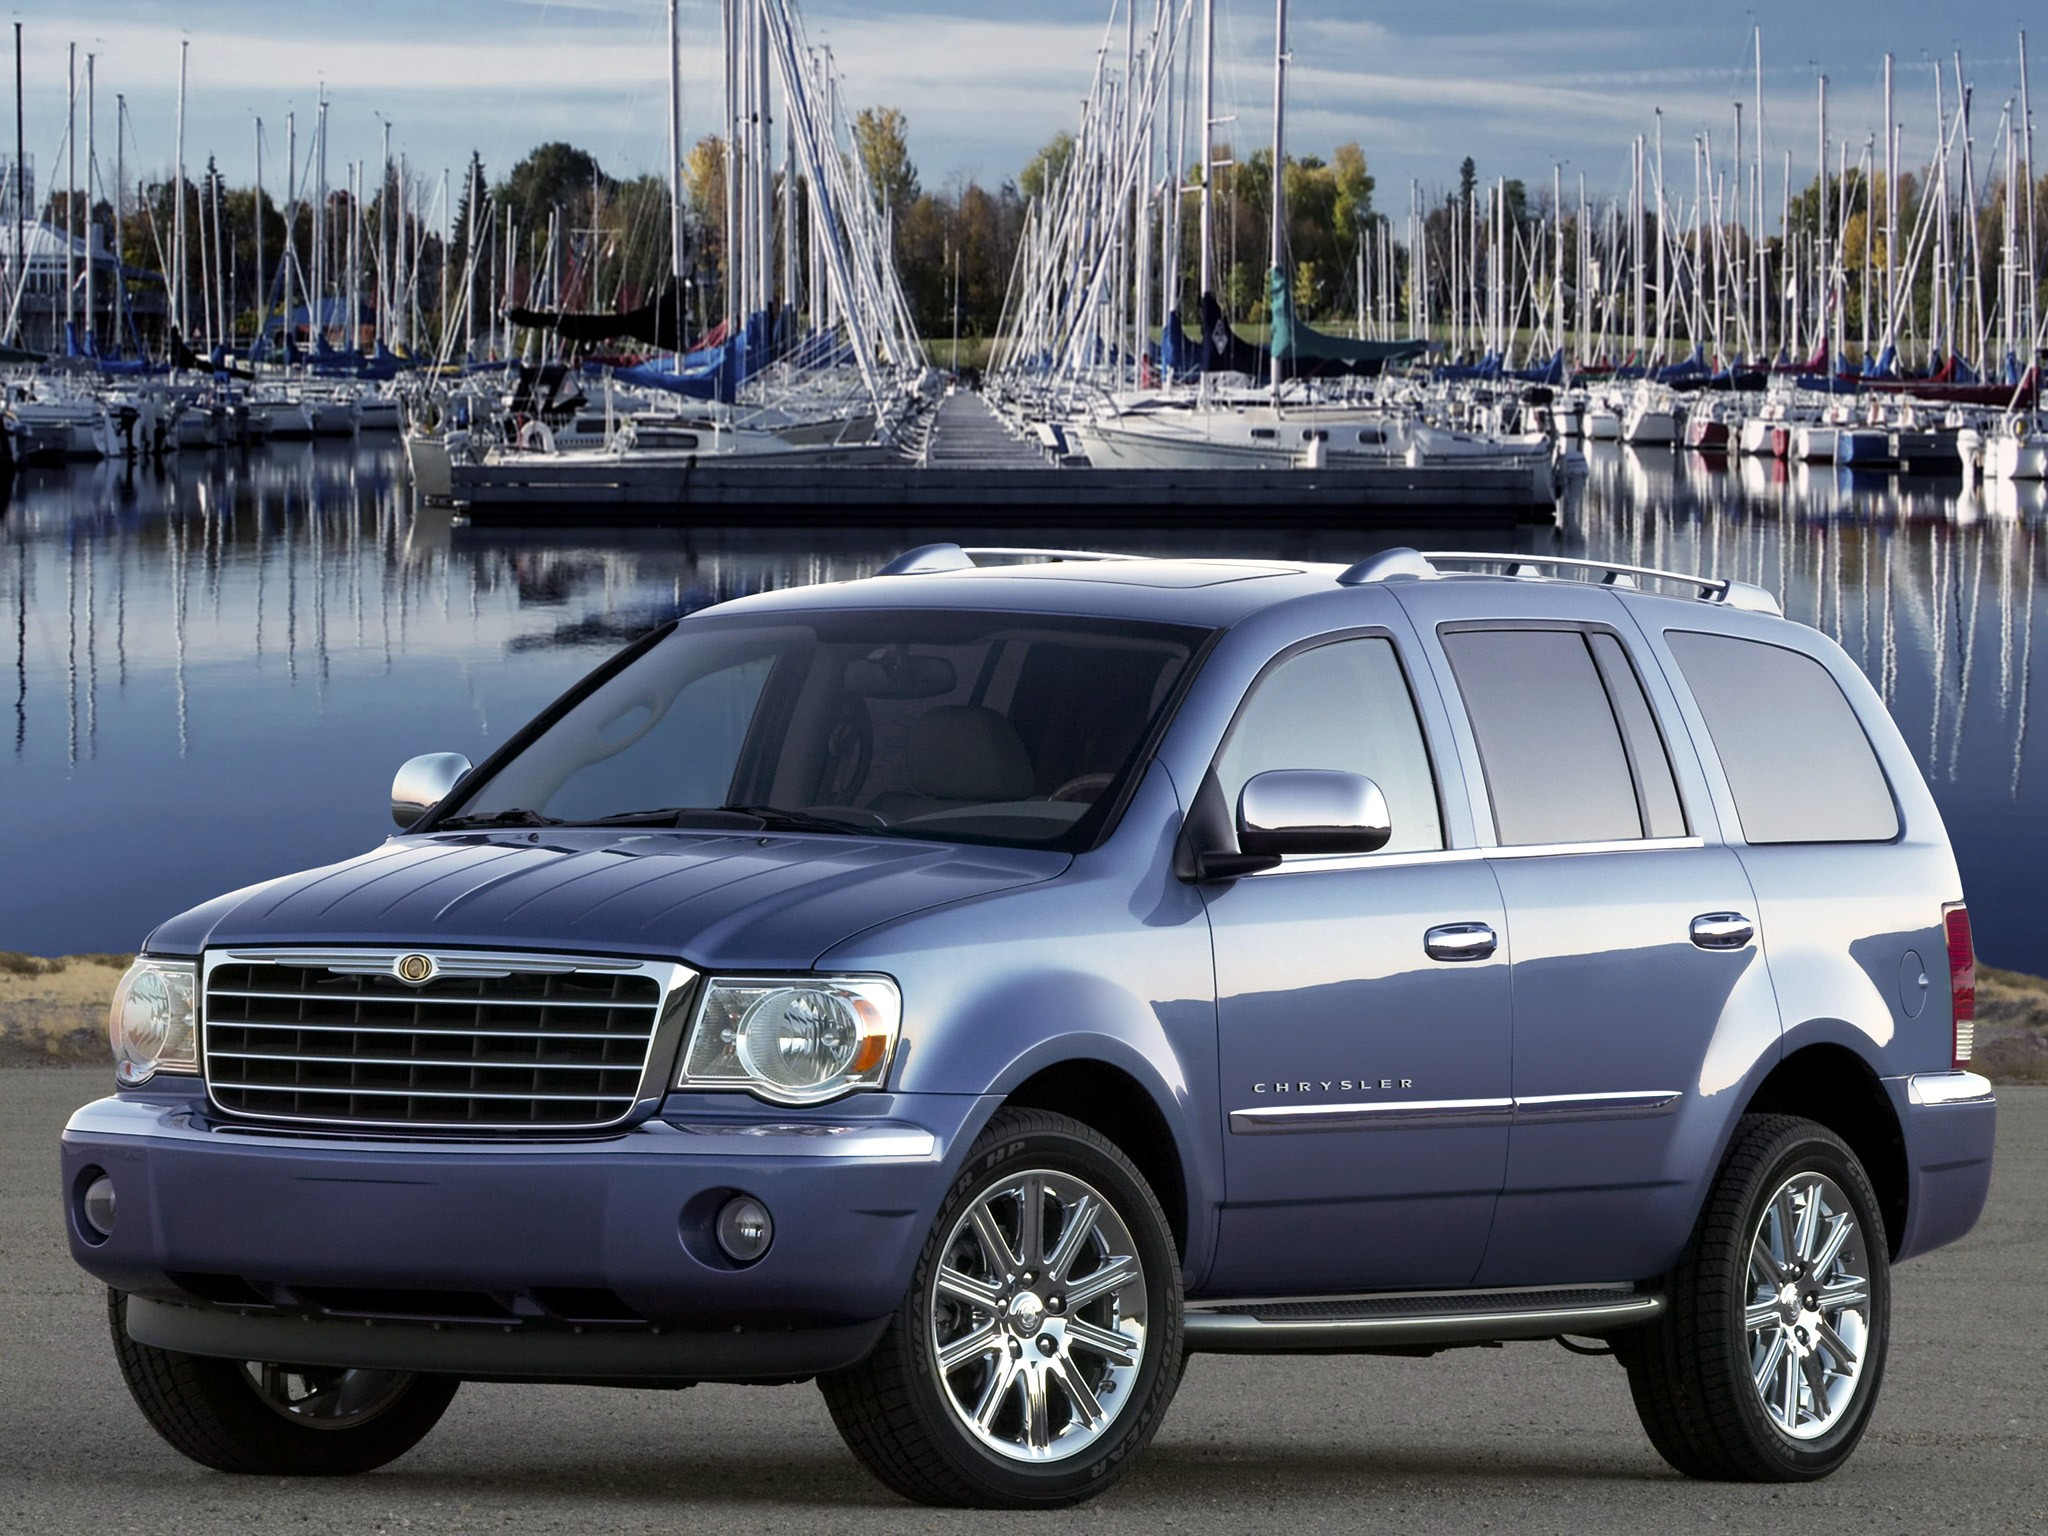 Dodge Durango Reviews >> CHRYSLER Aspen - 2006, 2007, 2008, 2009 - autoevolution